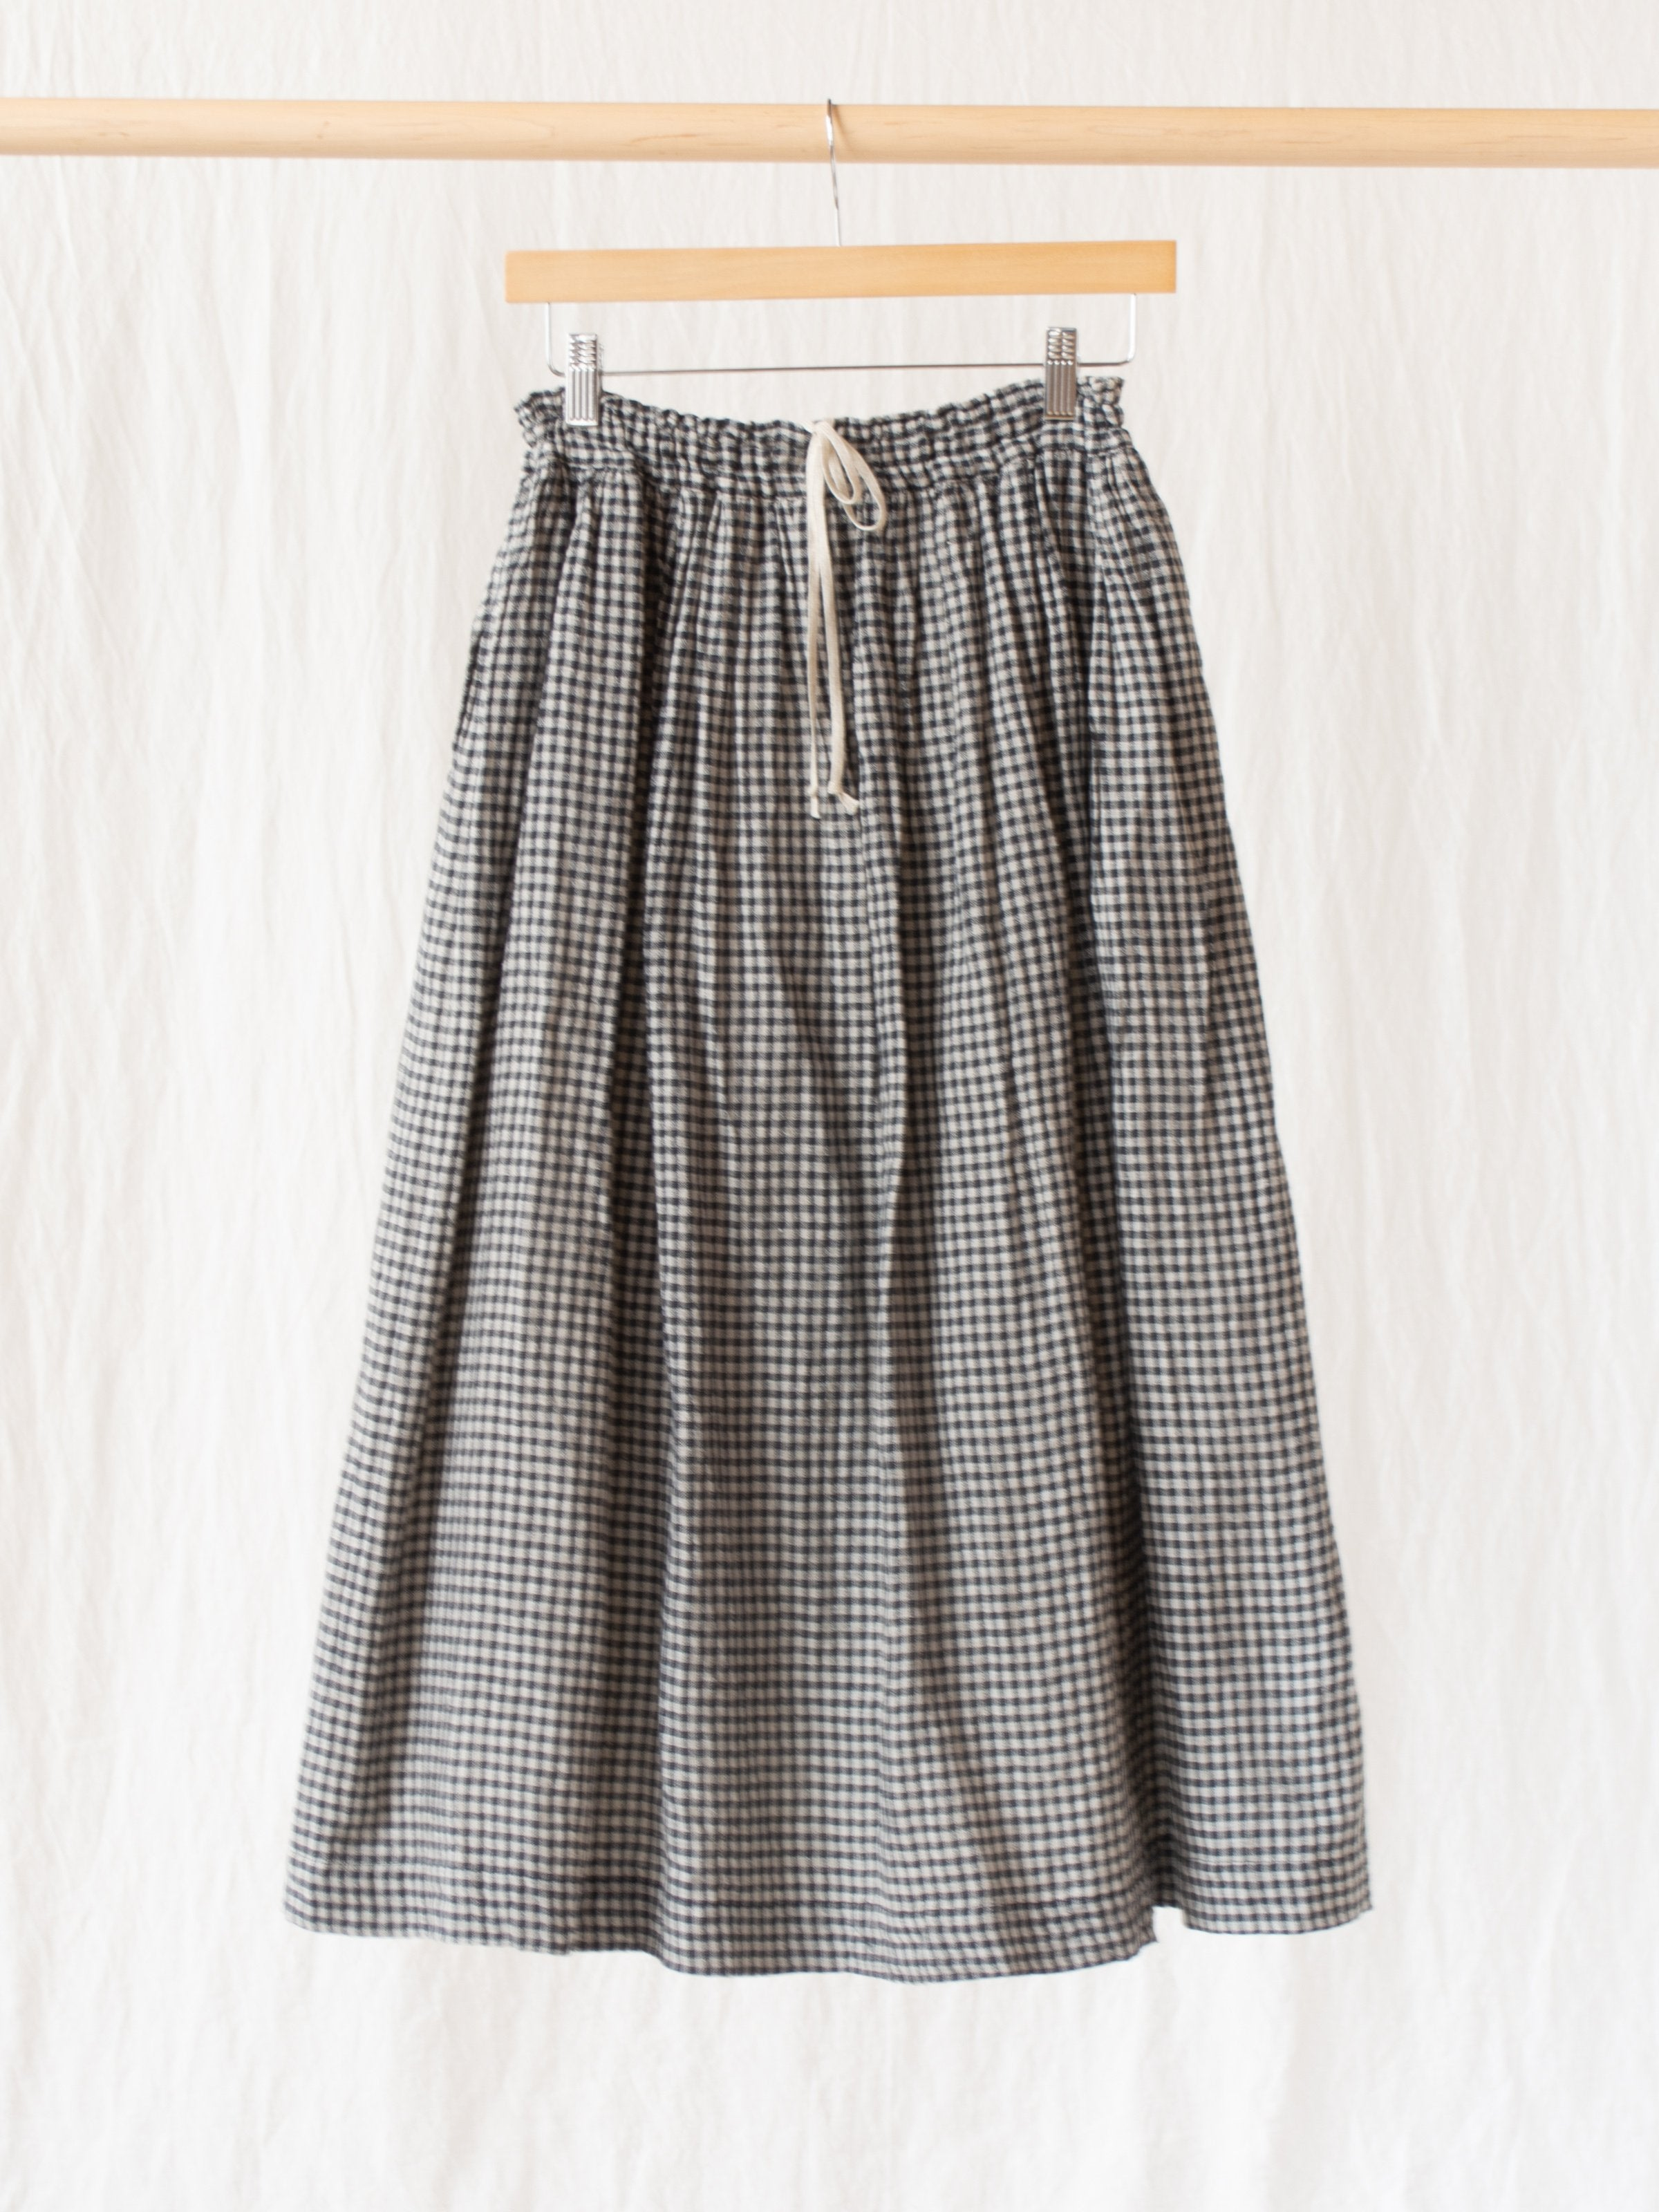 Namu Shop - Ichi Antiquites Co/Li Gingham Skirt - Black